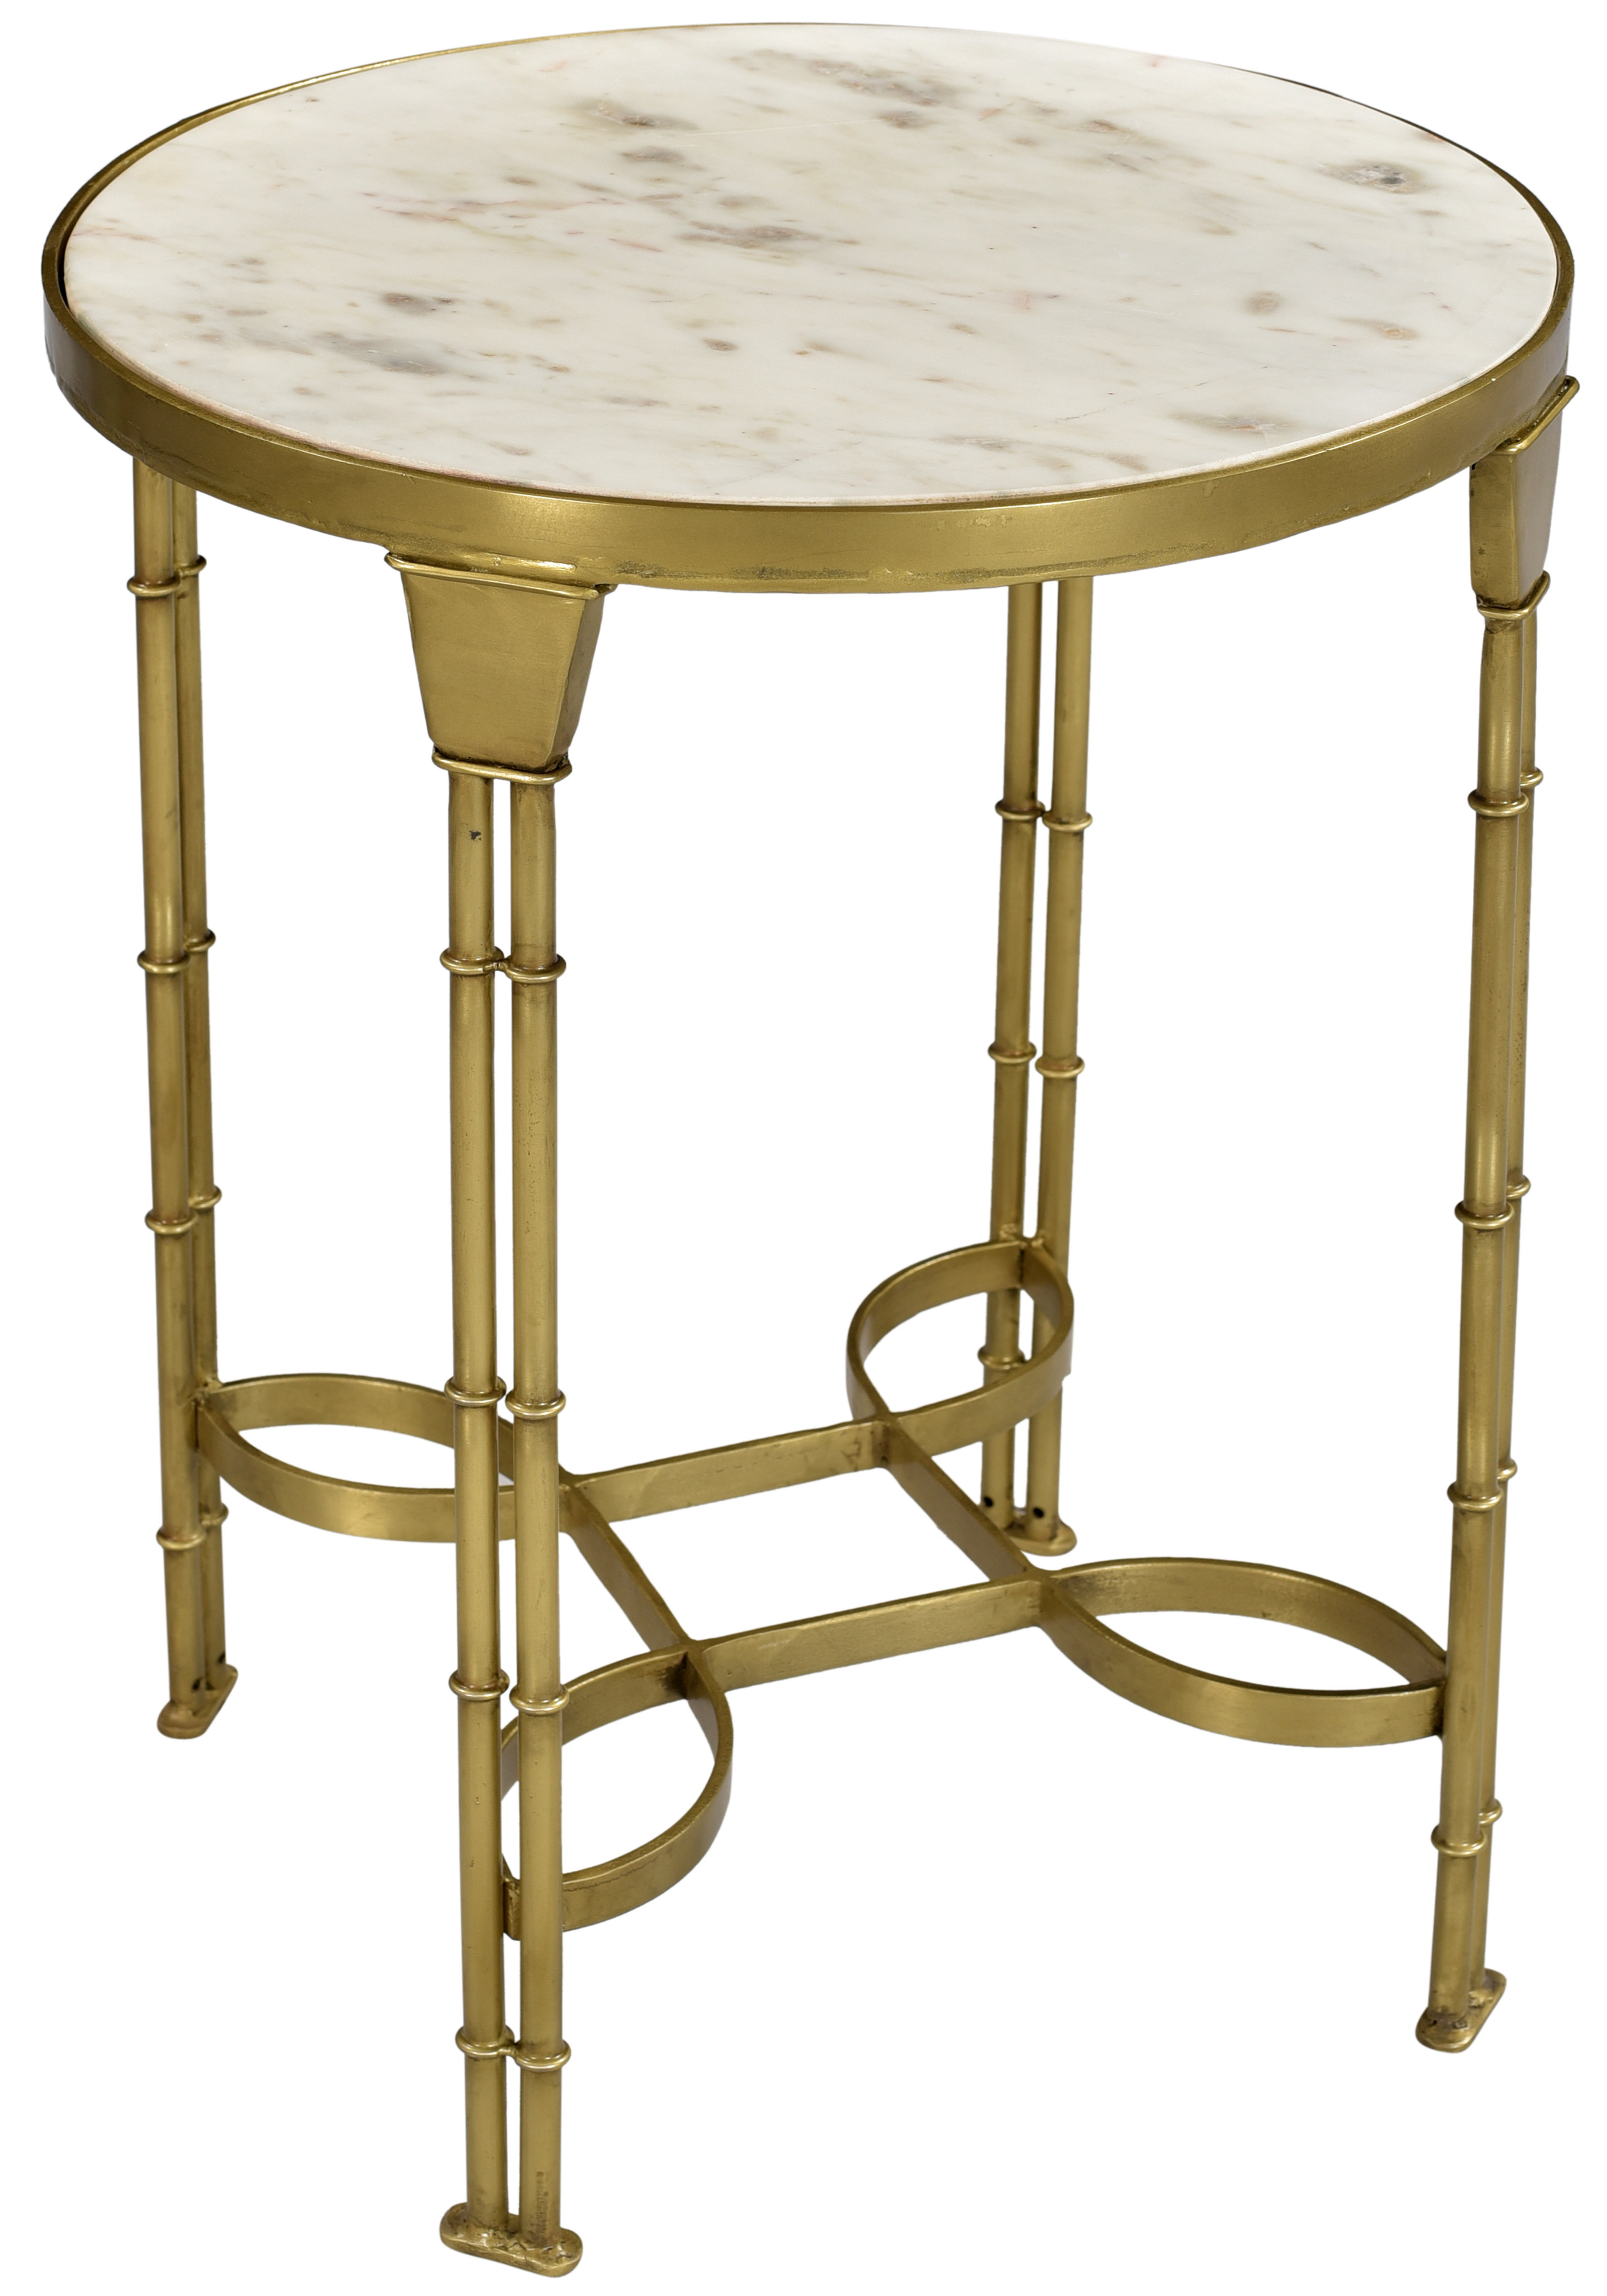 tipton tate hydra marble end table round accent jcpenney shower curtains coffee runner aluminum umbrella knotty pine desk small with folding sides glass for bedroom pedestal gold